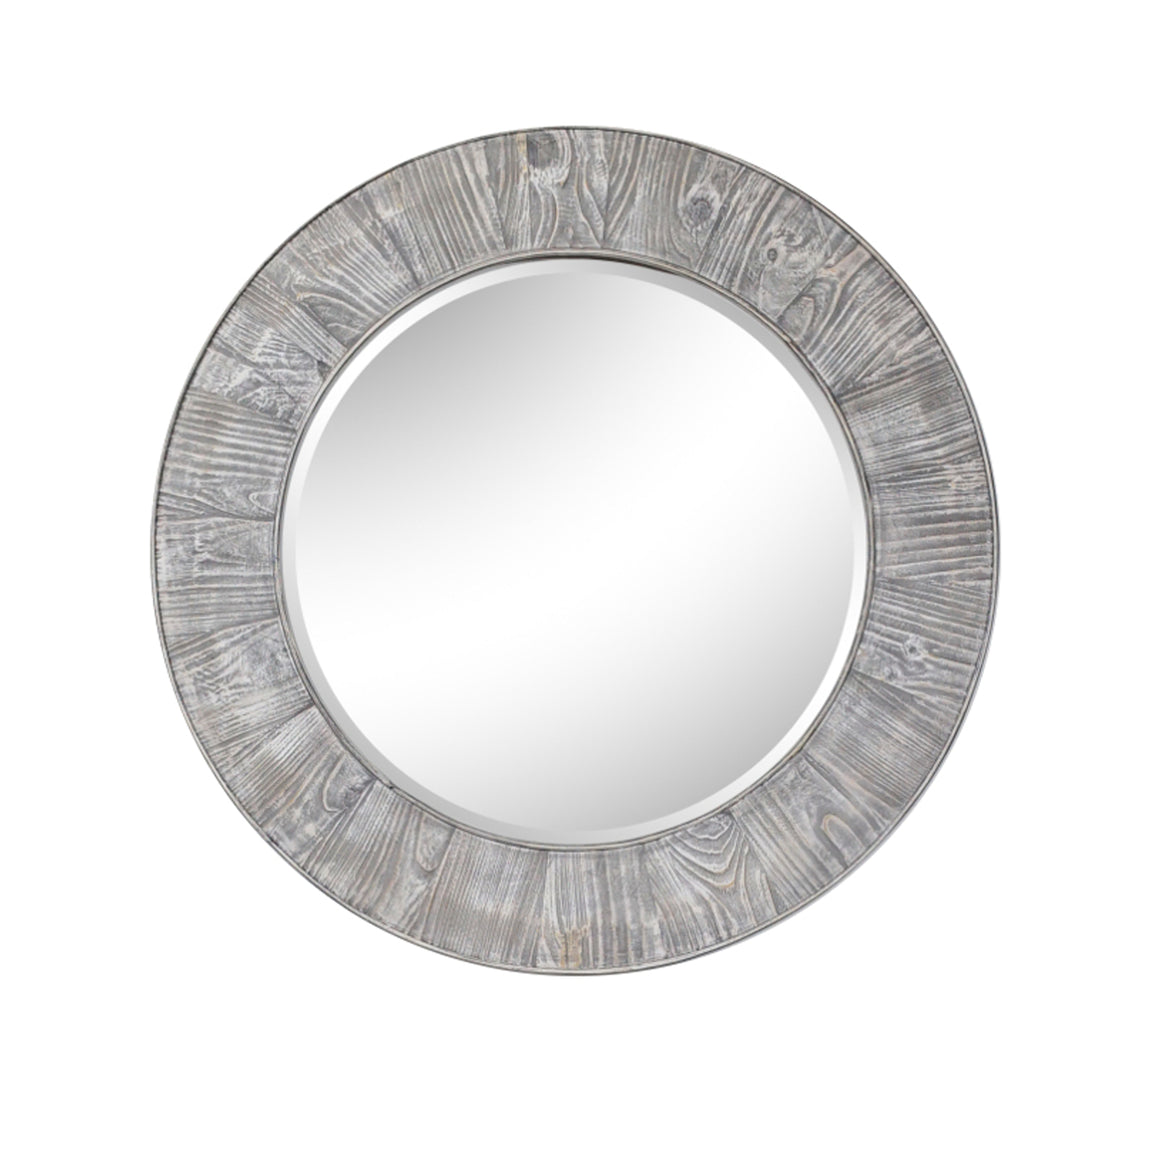 "27.5"" RUSTIC SOLID FIR MIRROR IN GREY DRIFTWOOD(ROUND)"